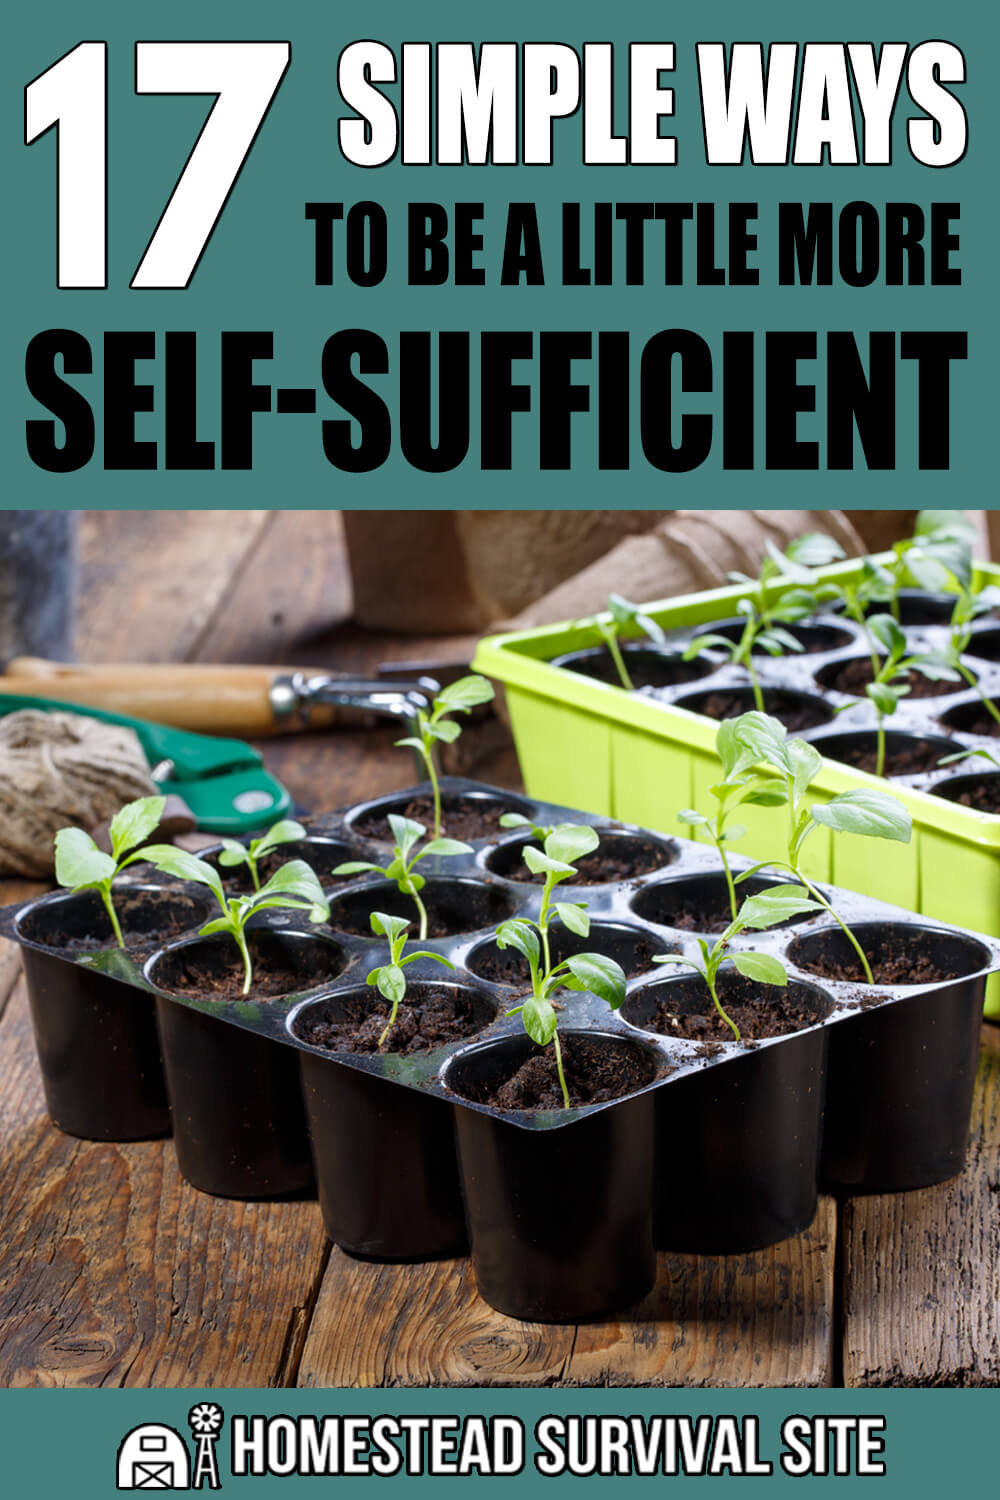 17 Simple Ways to Be a Little More Self-Sufficient